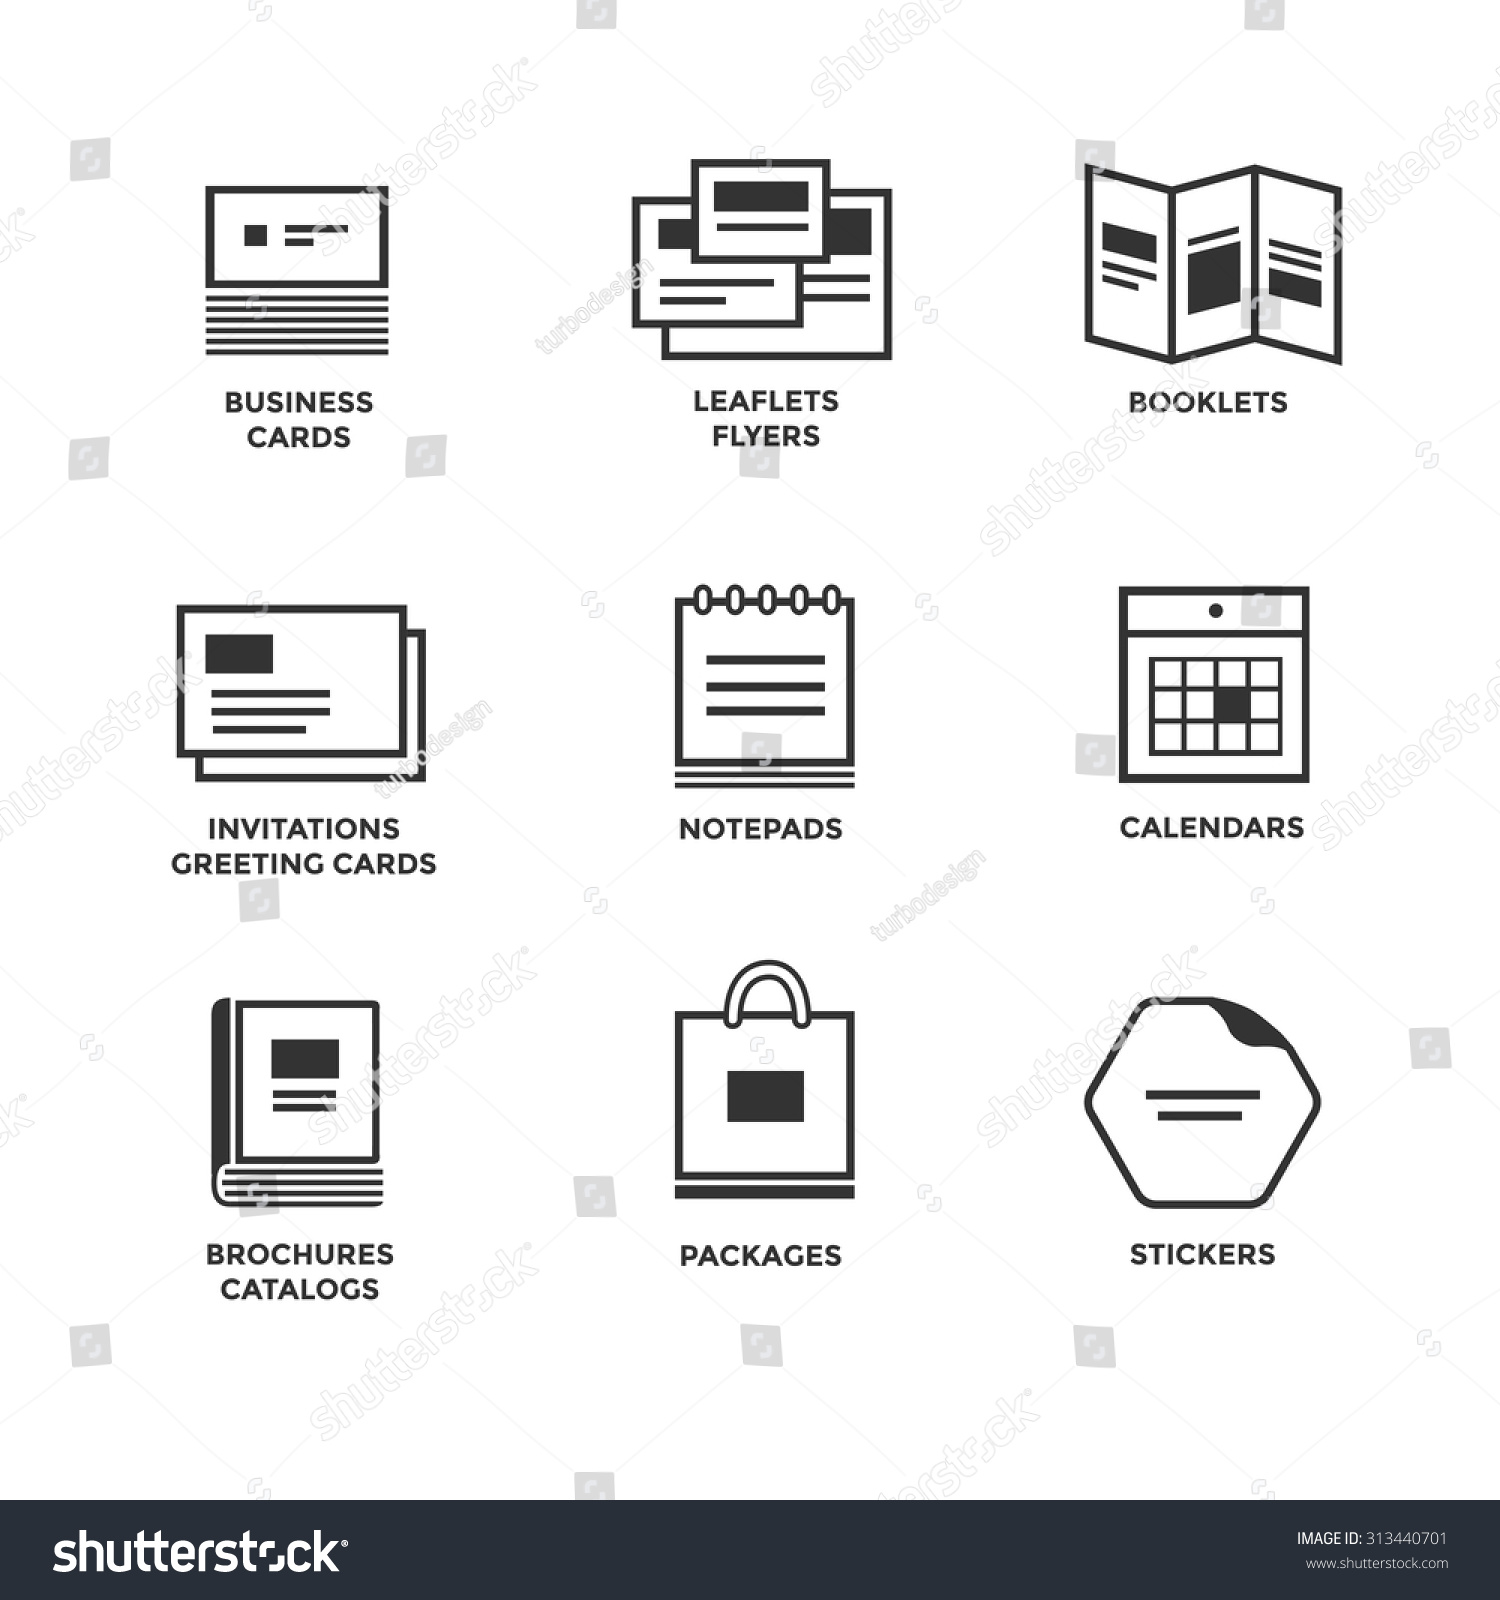 icons various print media size format stock vector royalty free